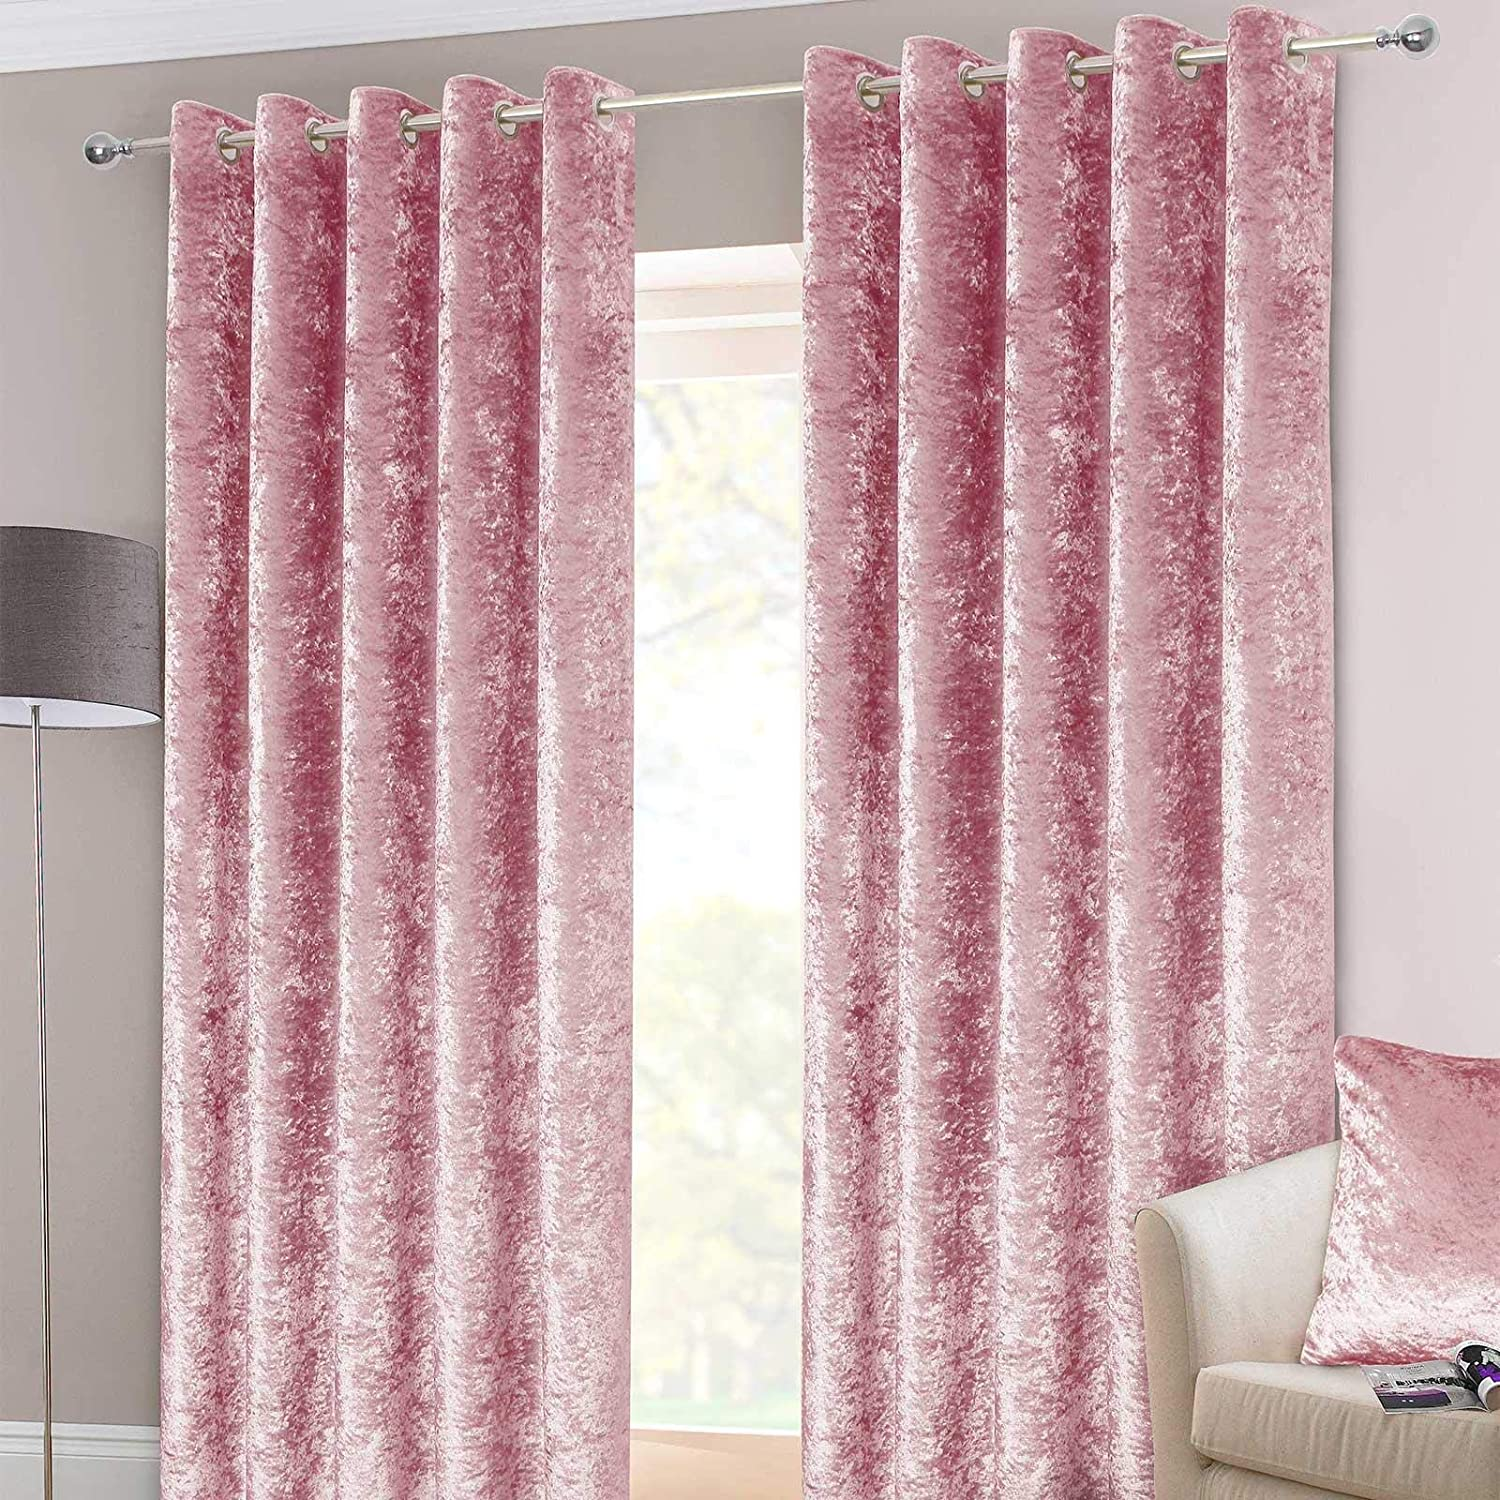 """HOMESCAPES Pink Crushed Velvet Lined Curtain Pair 90 x 90"""" (229 x 229 cm) Heavy Weight Contemporary Neutral Eyelet Curtains Curtain Pair 90x90"""" Pink"""